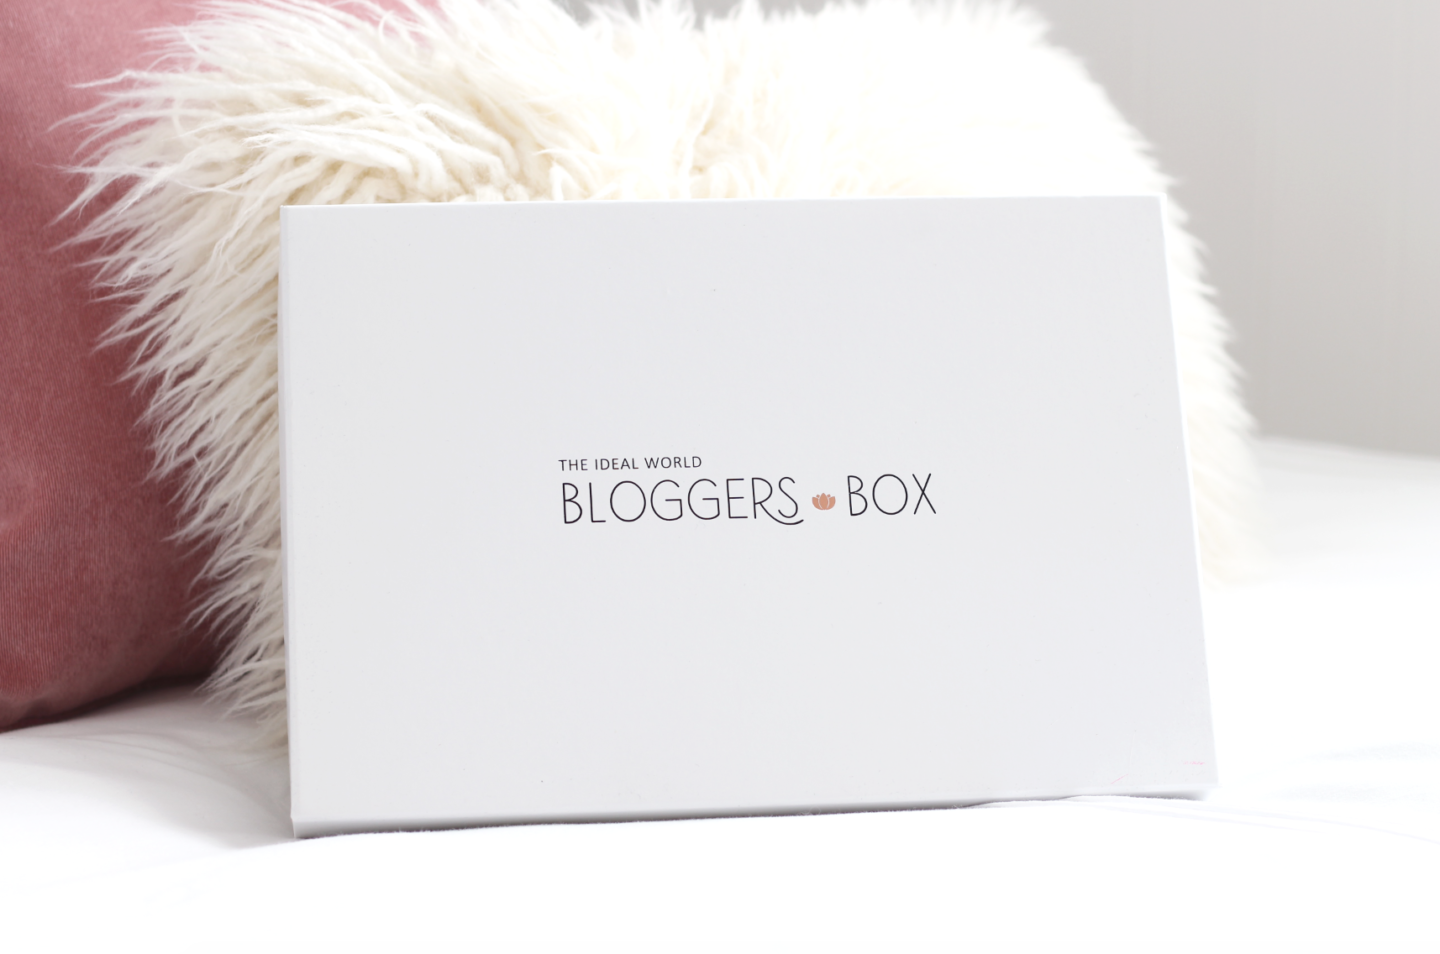 IDEAL WORLD'S BLOGGERS BOX